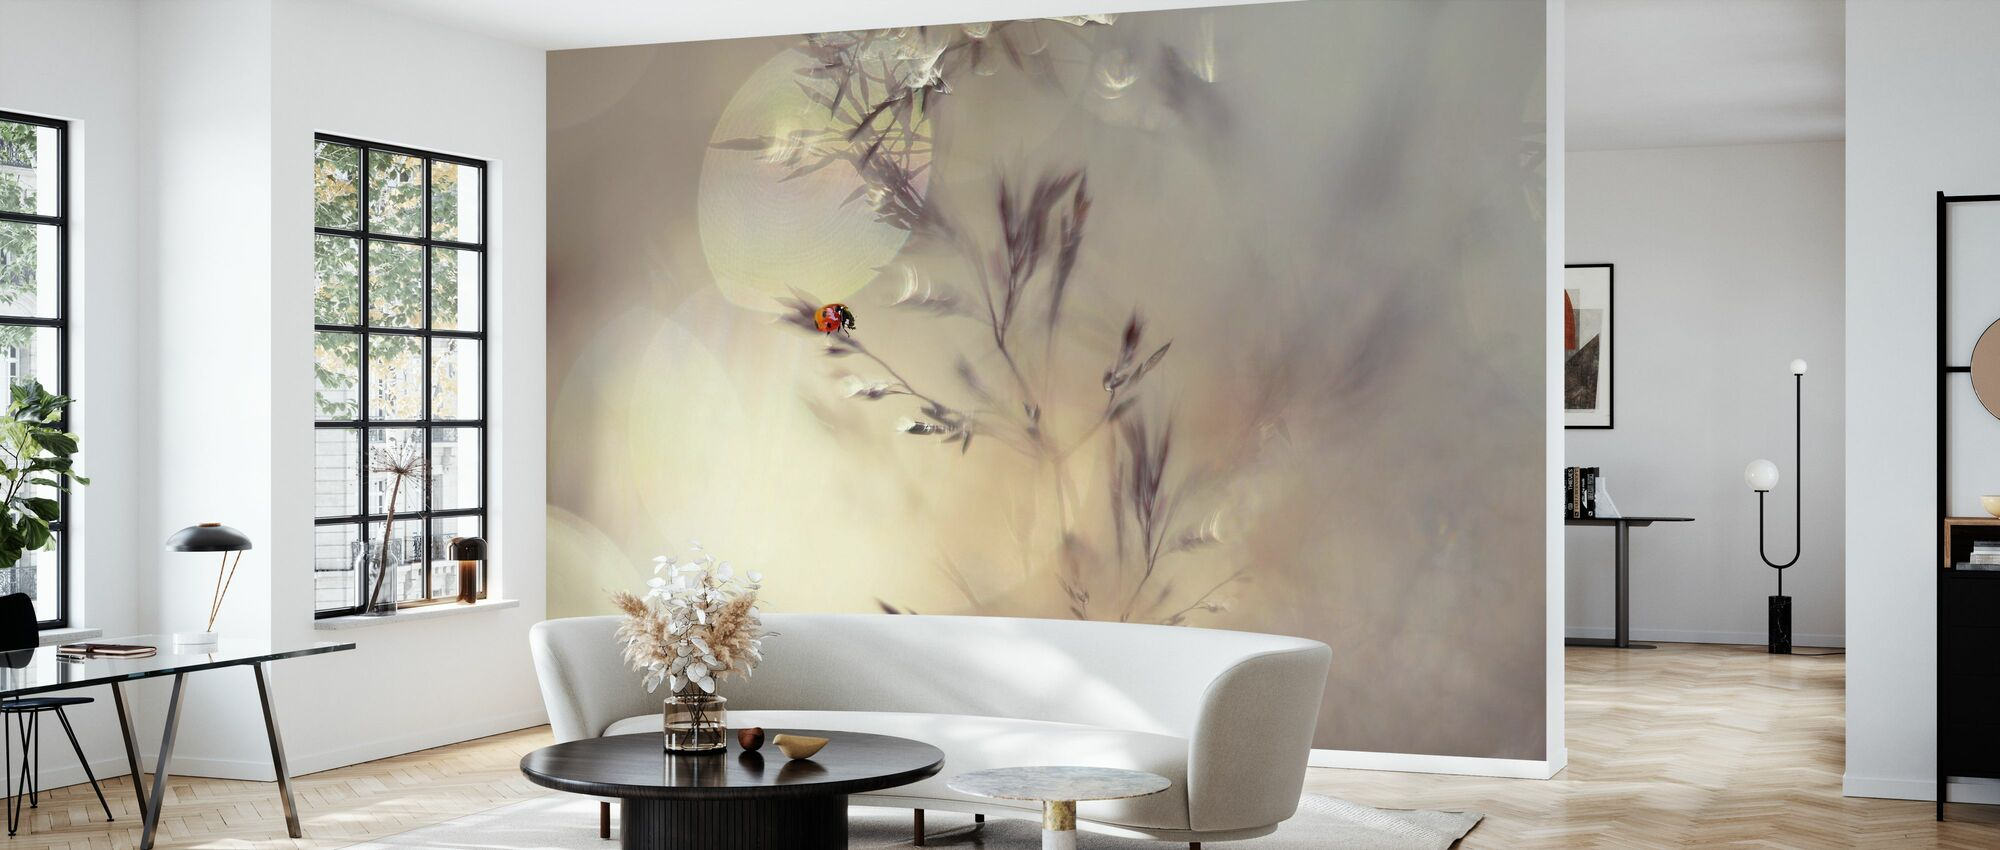 Little Lady - Wallpaper - Living Room